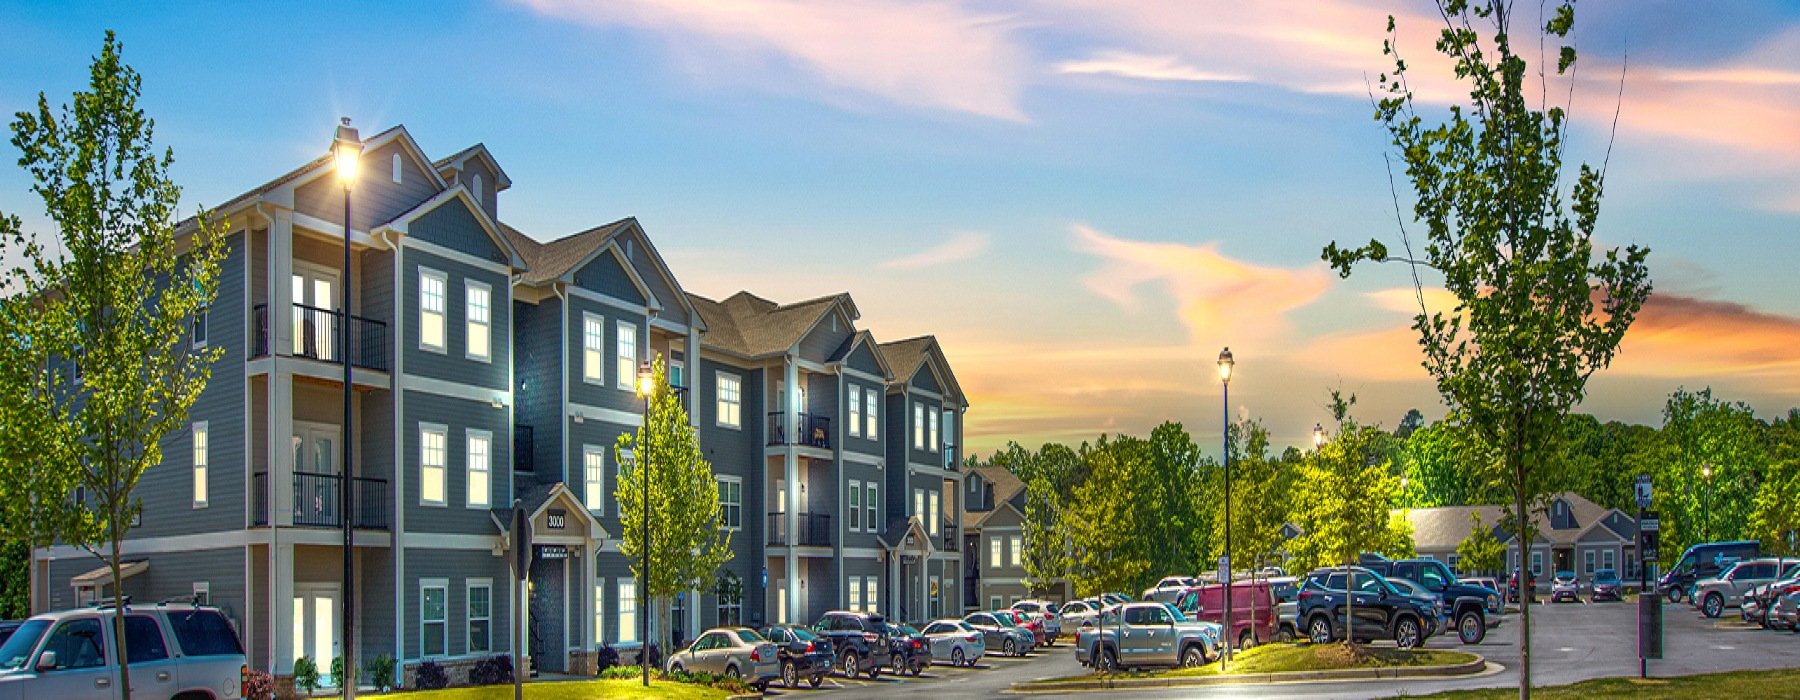 Exterior view of the apartments during sunset